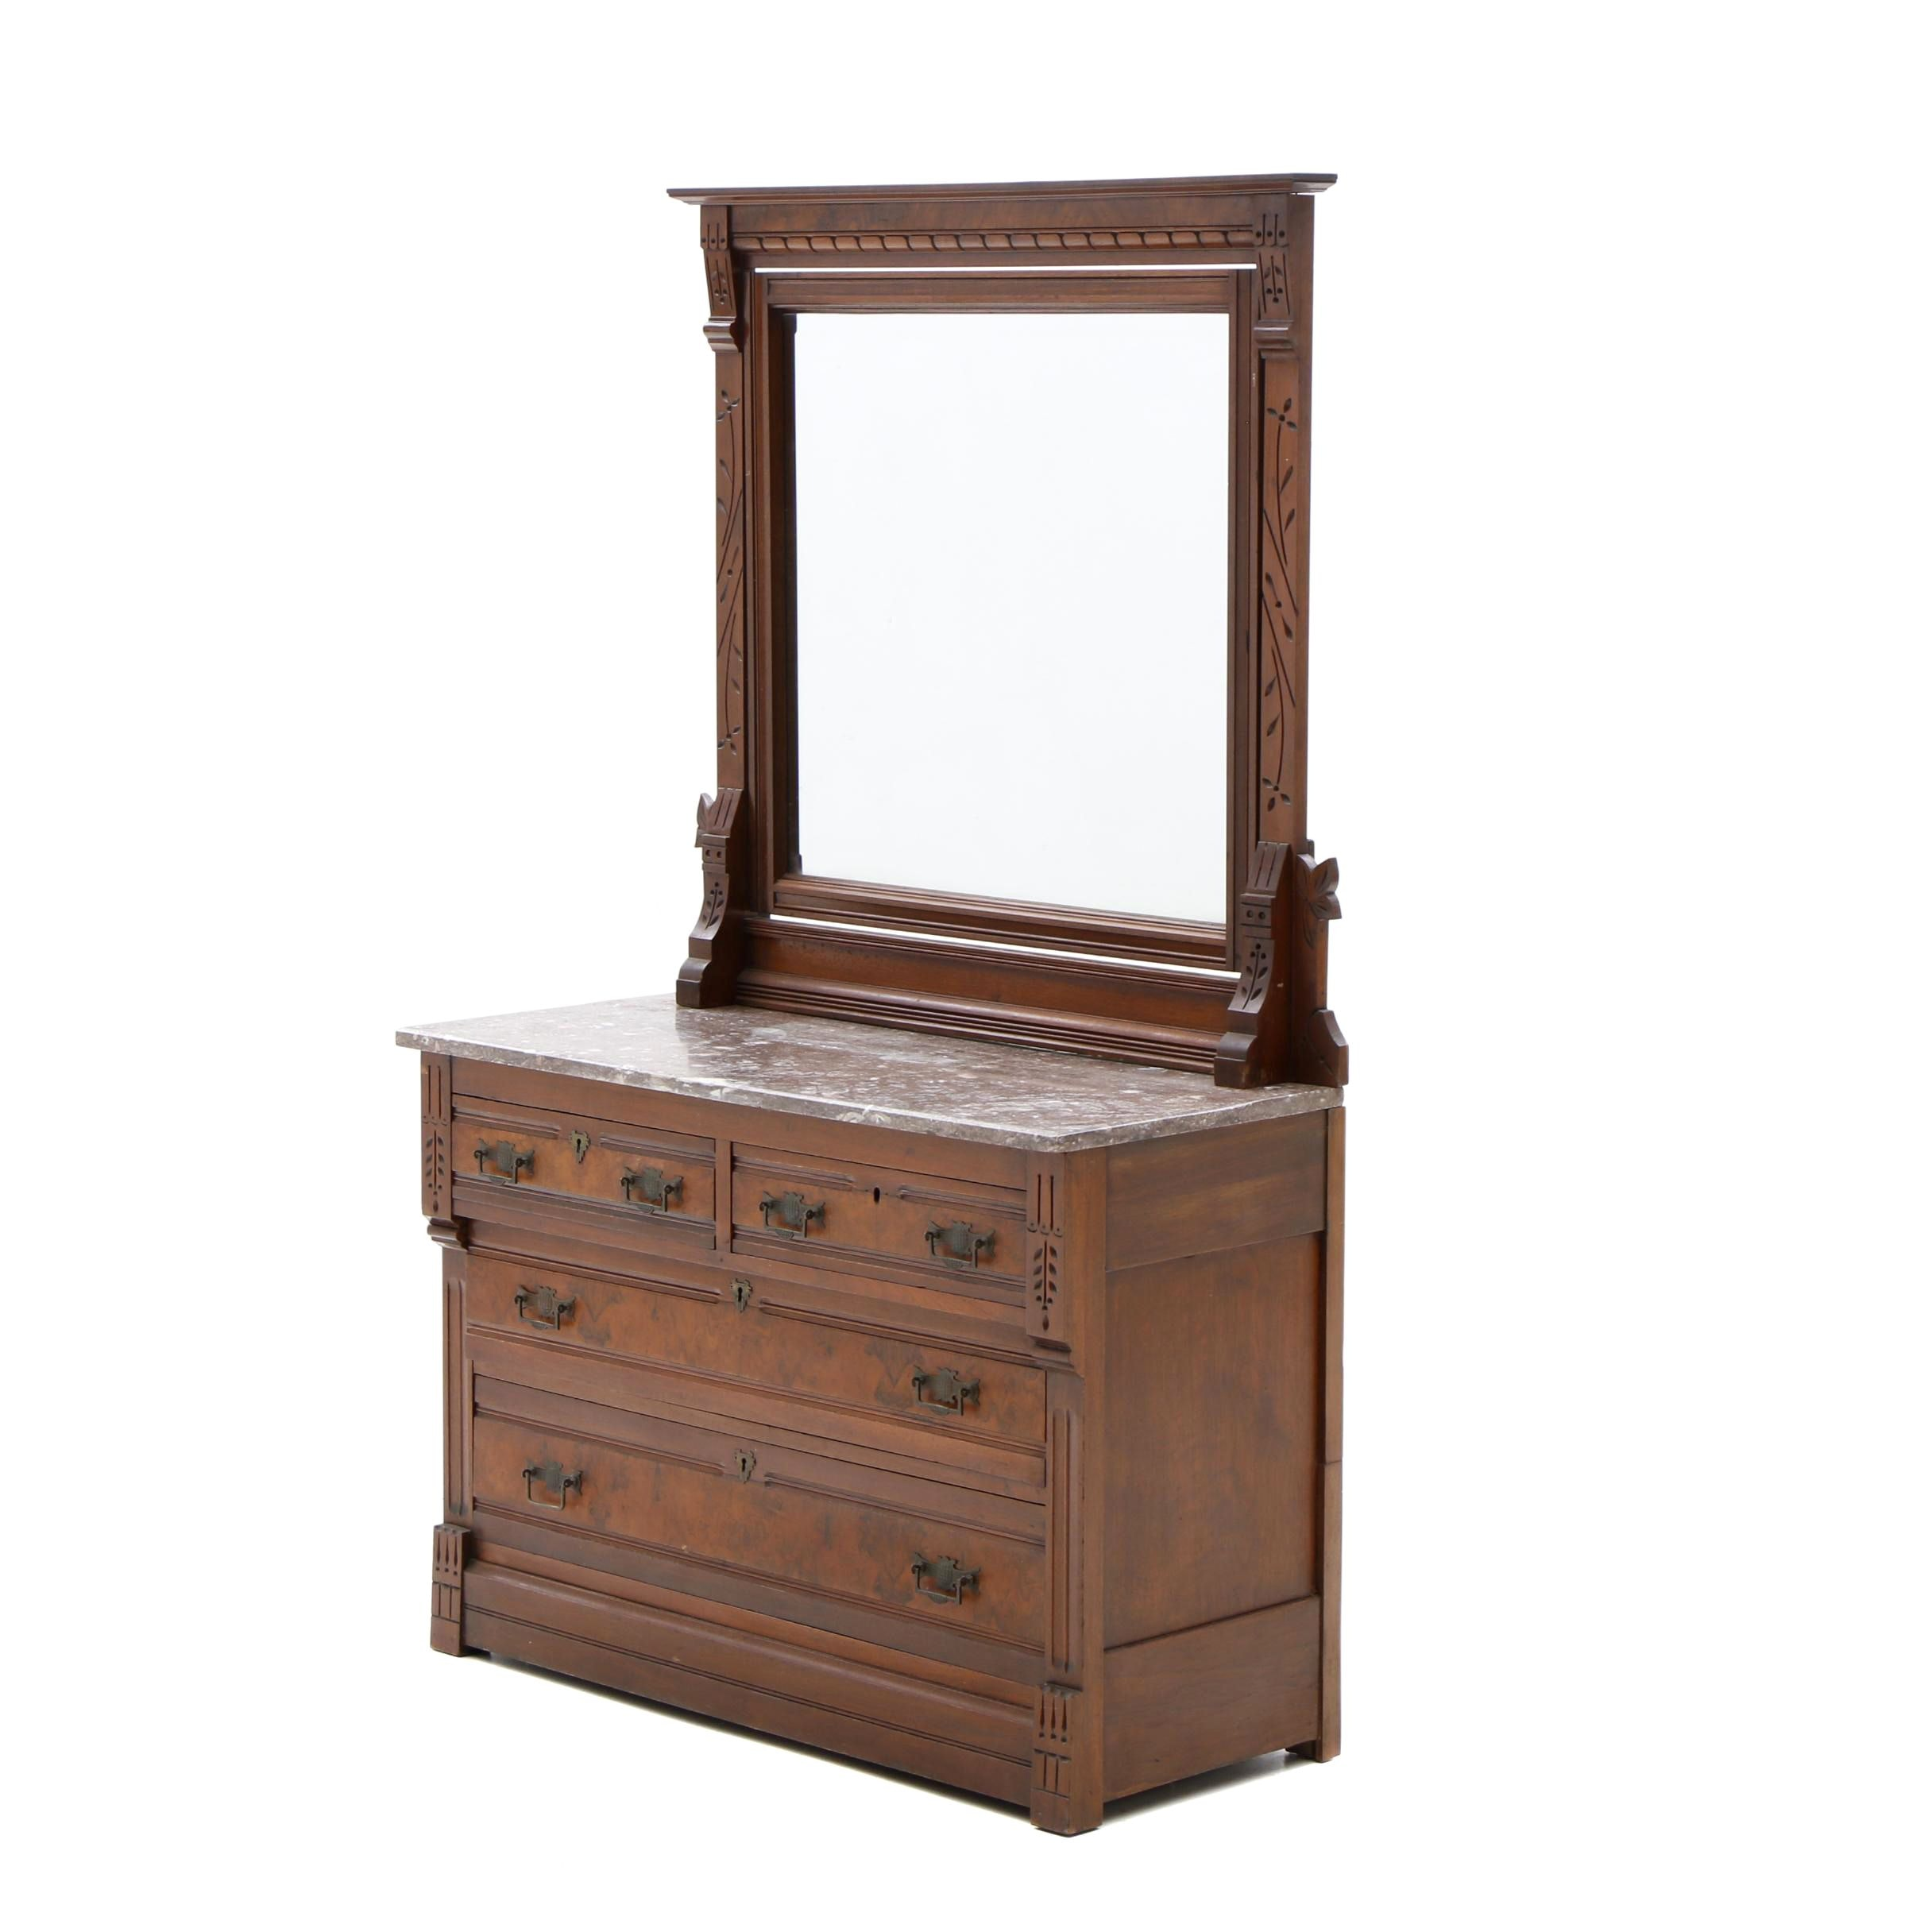 Antique Eastlake Chest of Drawers and Mirror